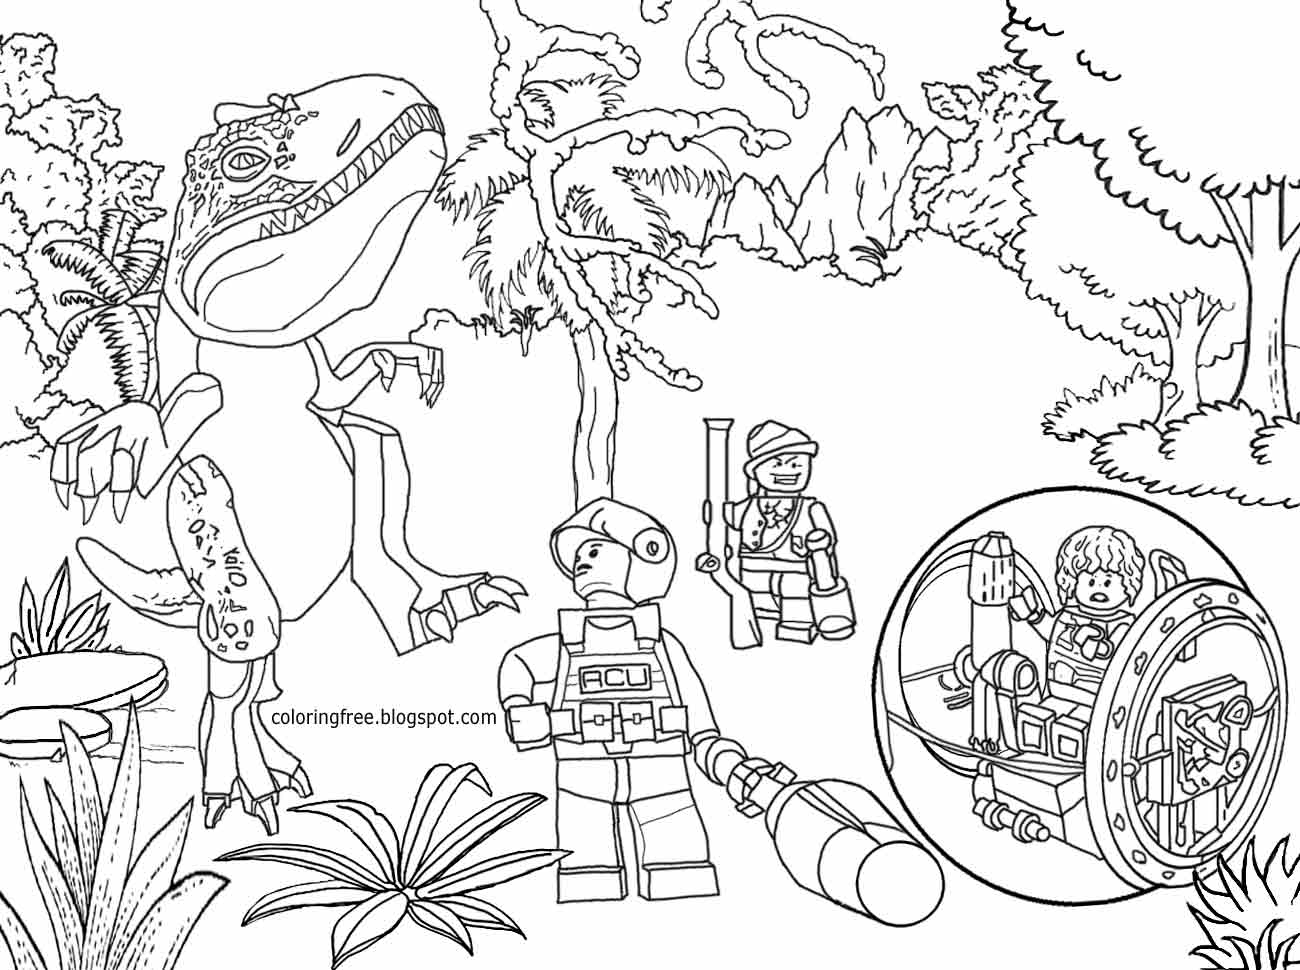 lego dino coloring pages - photo#4